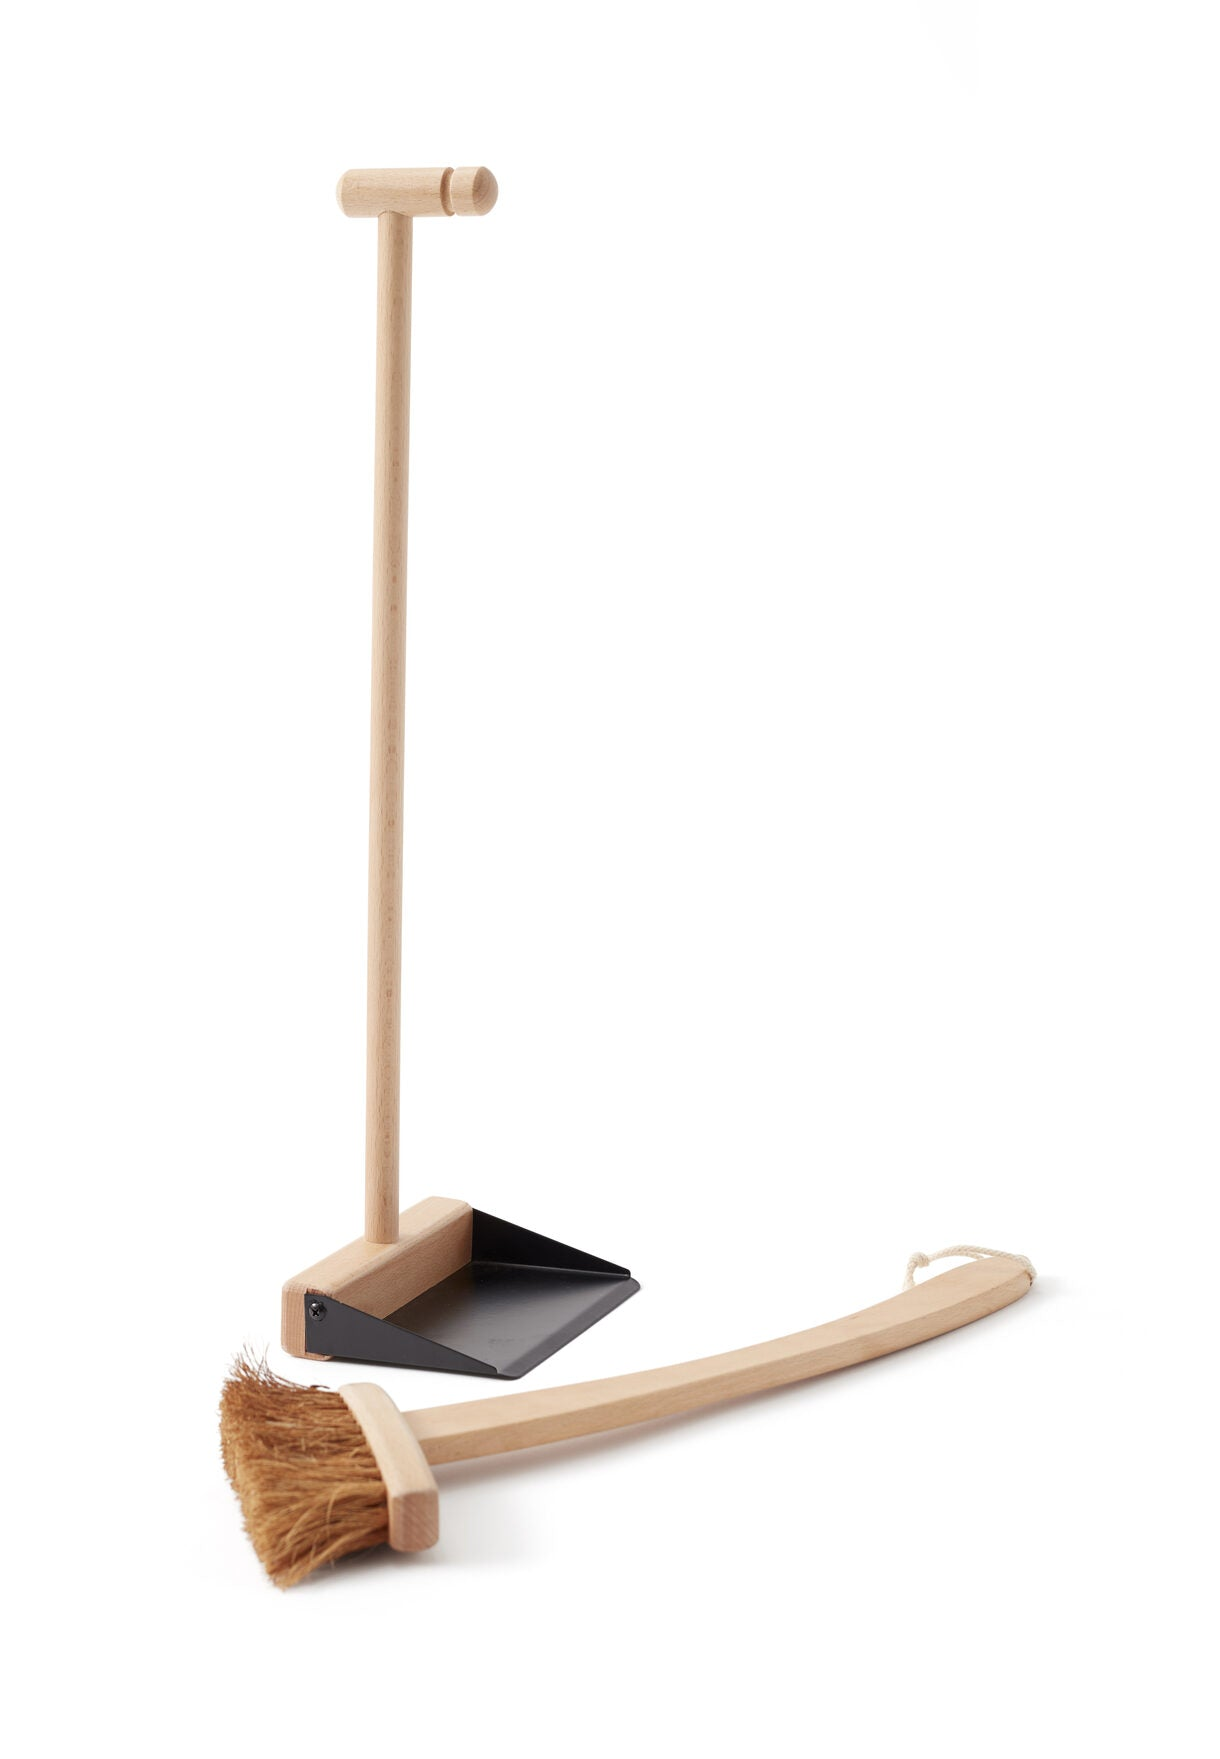 Brush and Dustpan - Wooden Toy - Daily Mind